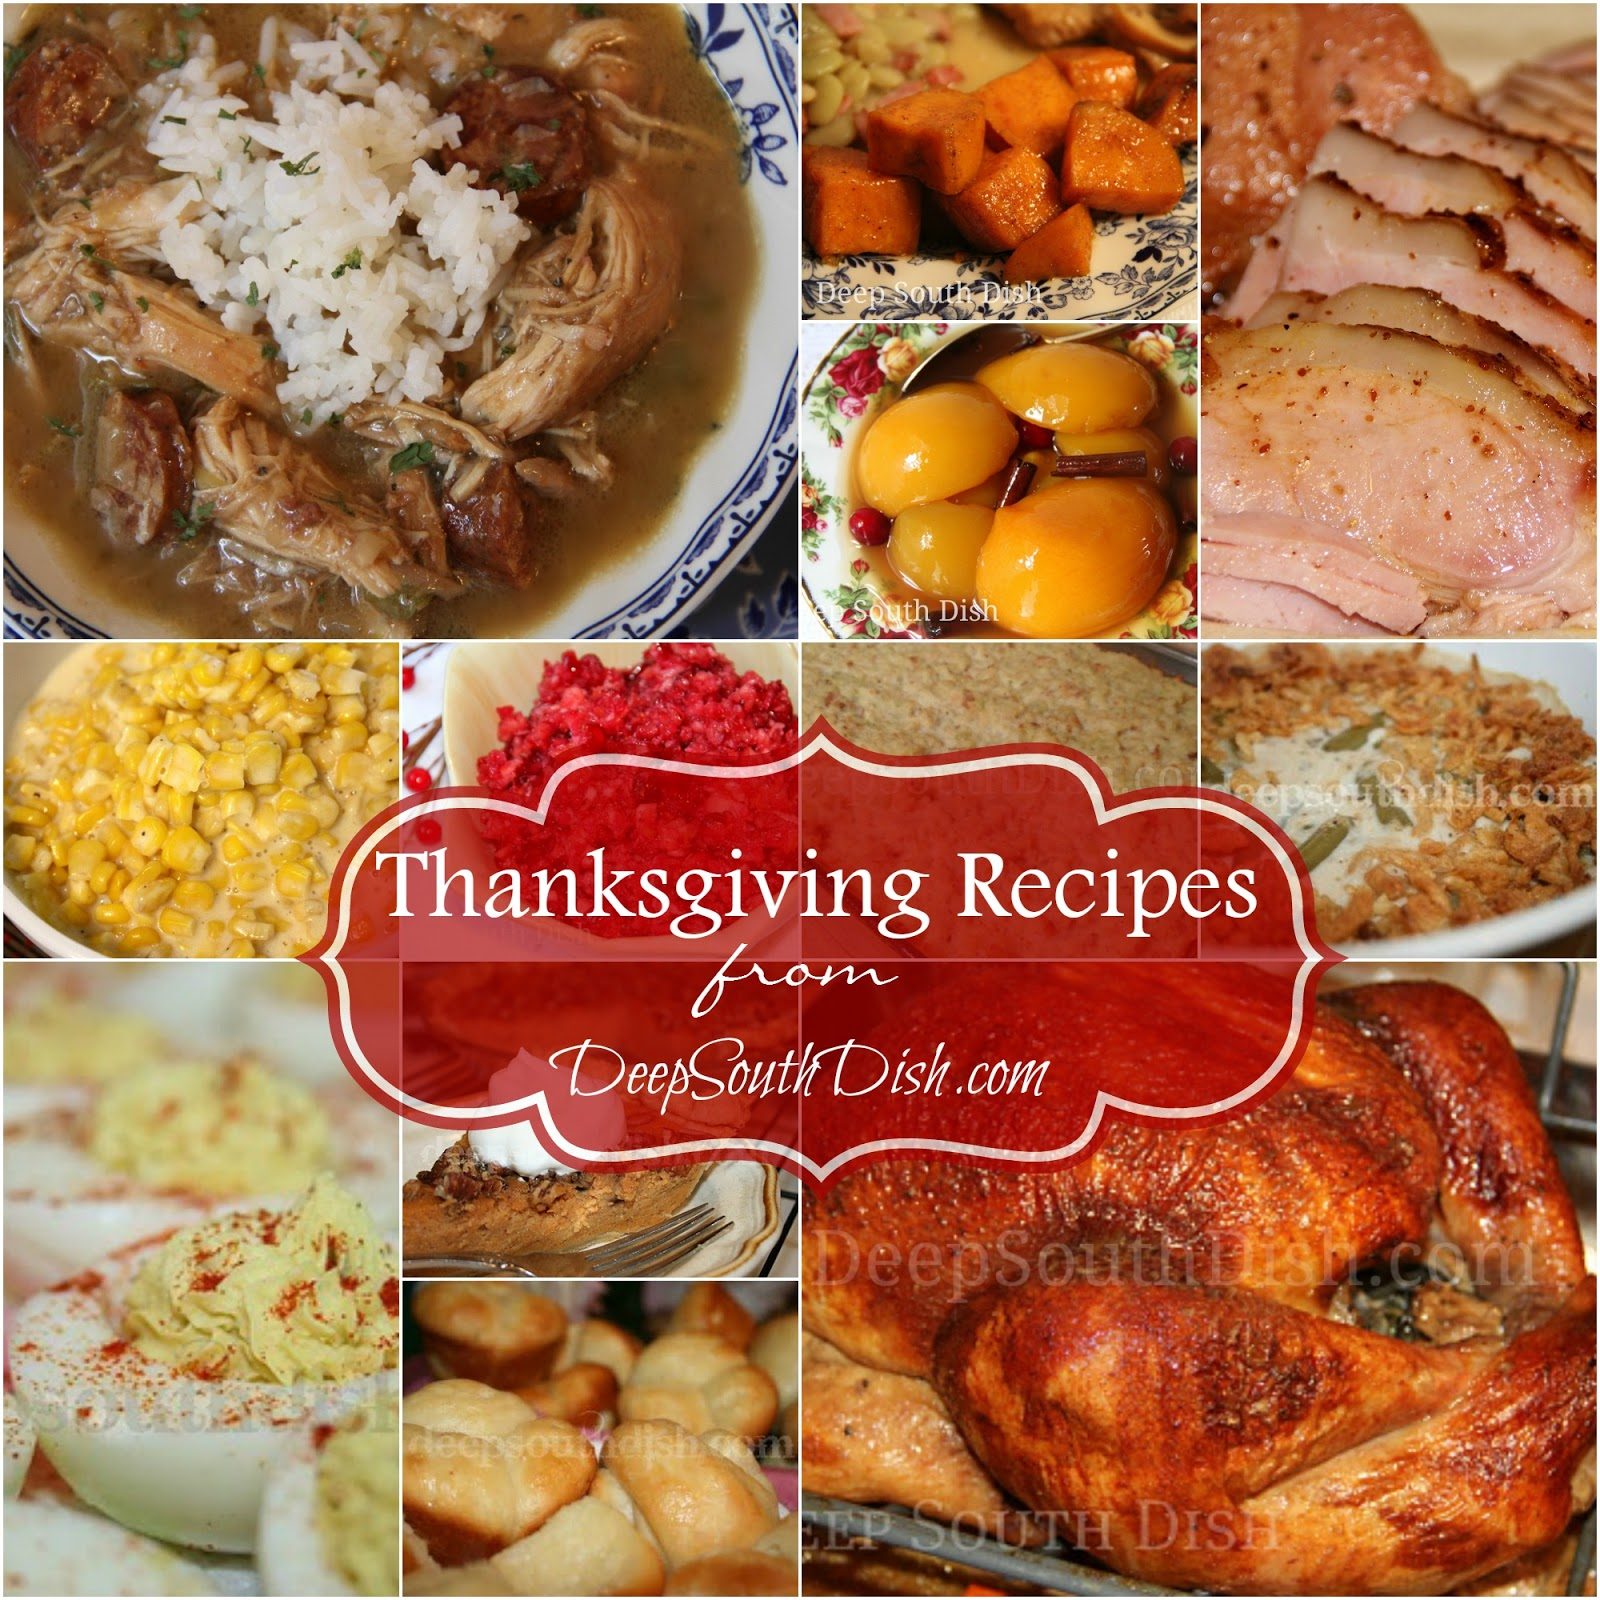 Deep south dish deep south southern thanksgiving recipes and menu ideas traditional and classic deep south favorite southern thanksgiving recipes all from deep south dish forumfinder